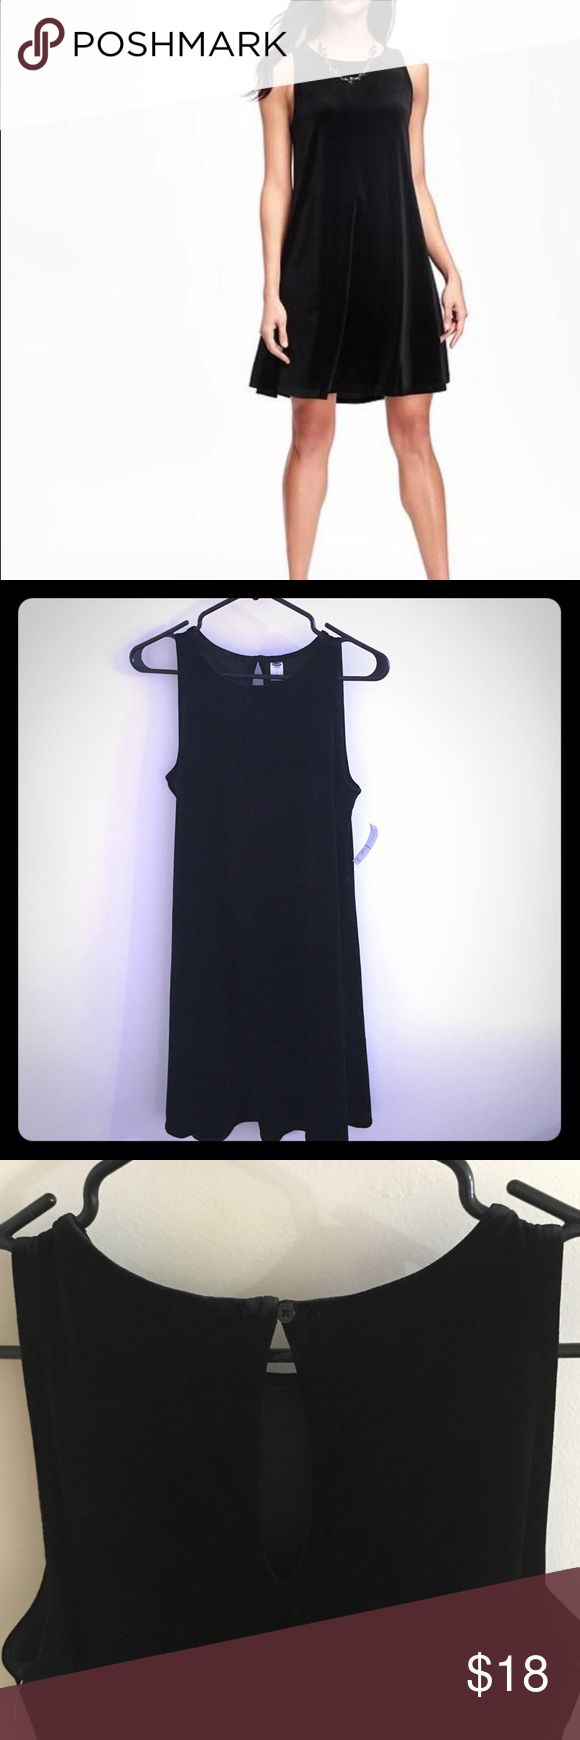 "Black velvet dress Flirty velvet dress. Comfy, flattering, and never been worn! Hits above the knees on me (5'9"") and has keyhole detail on the back. Perfect for a night out ✨ Old Navy Dresses Mini"